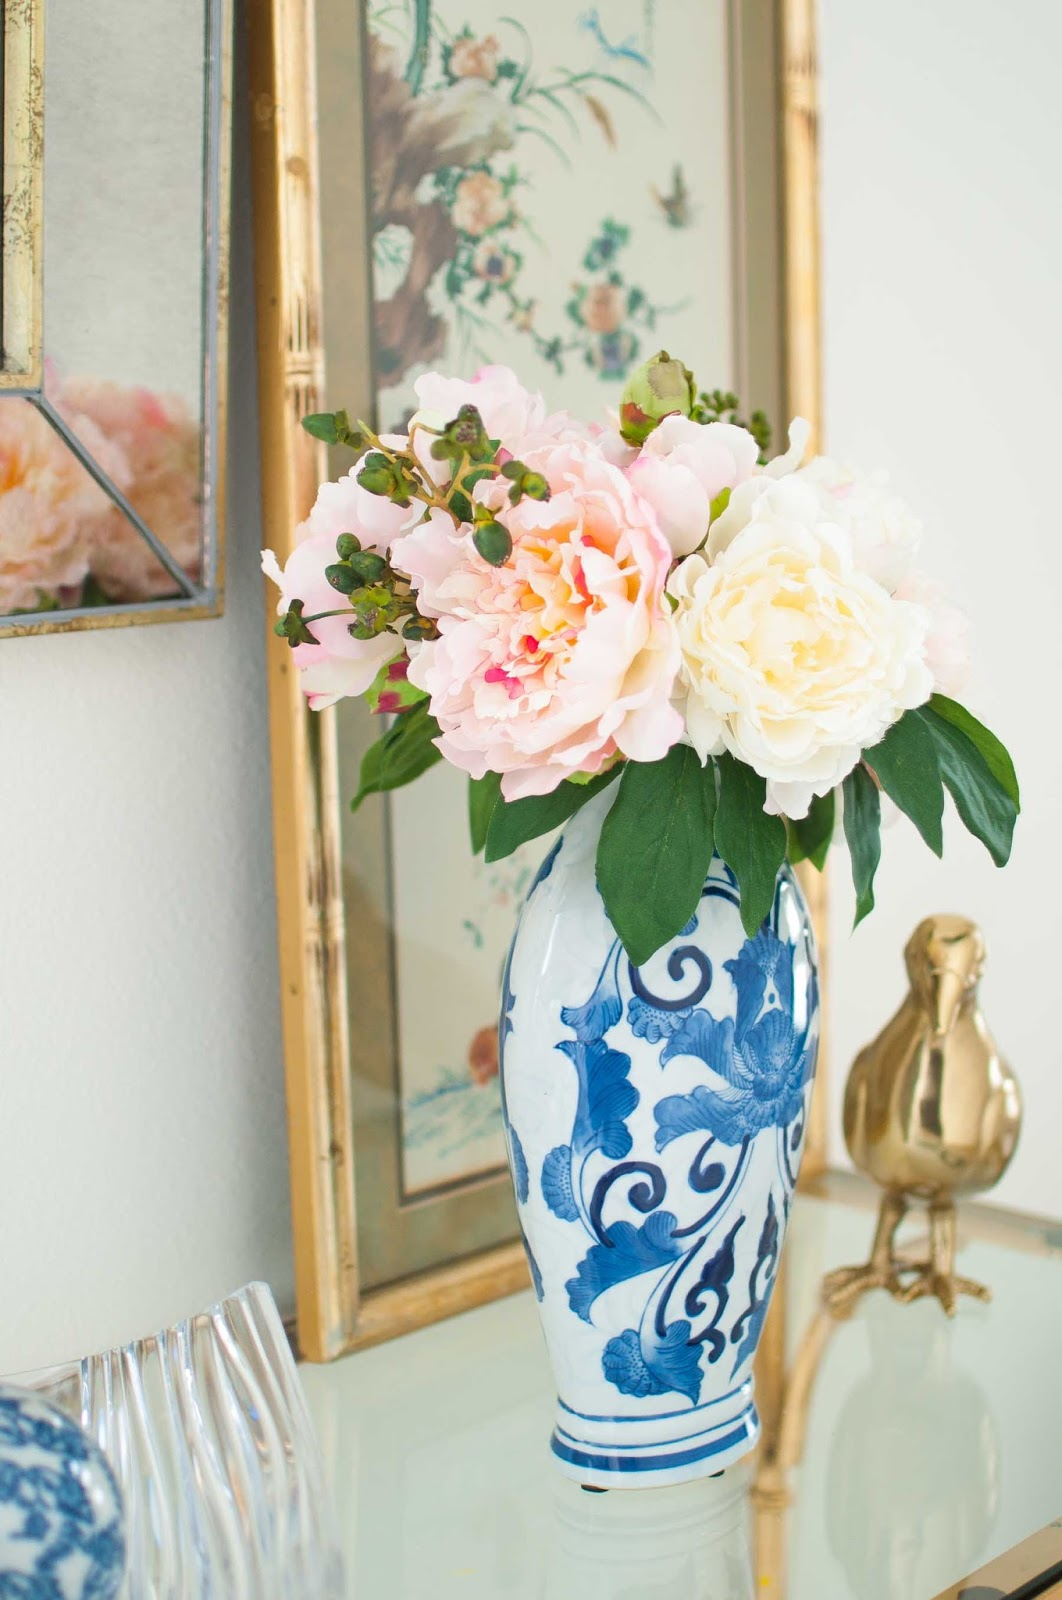 Ginger jar floral arrangement with faux florals amidst chinoiserie decor,